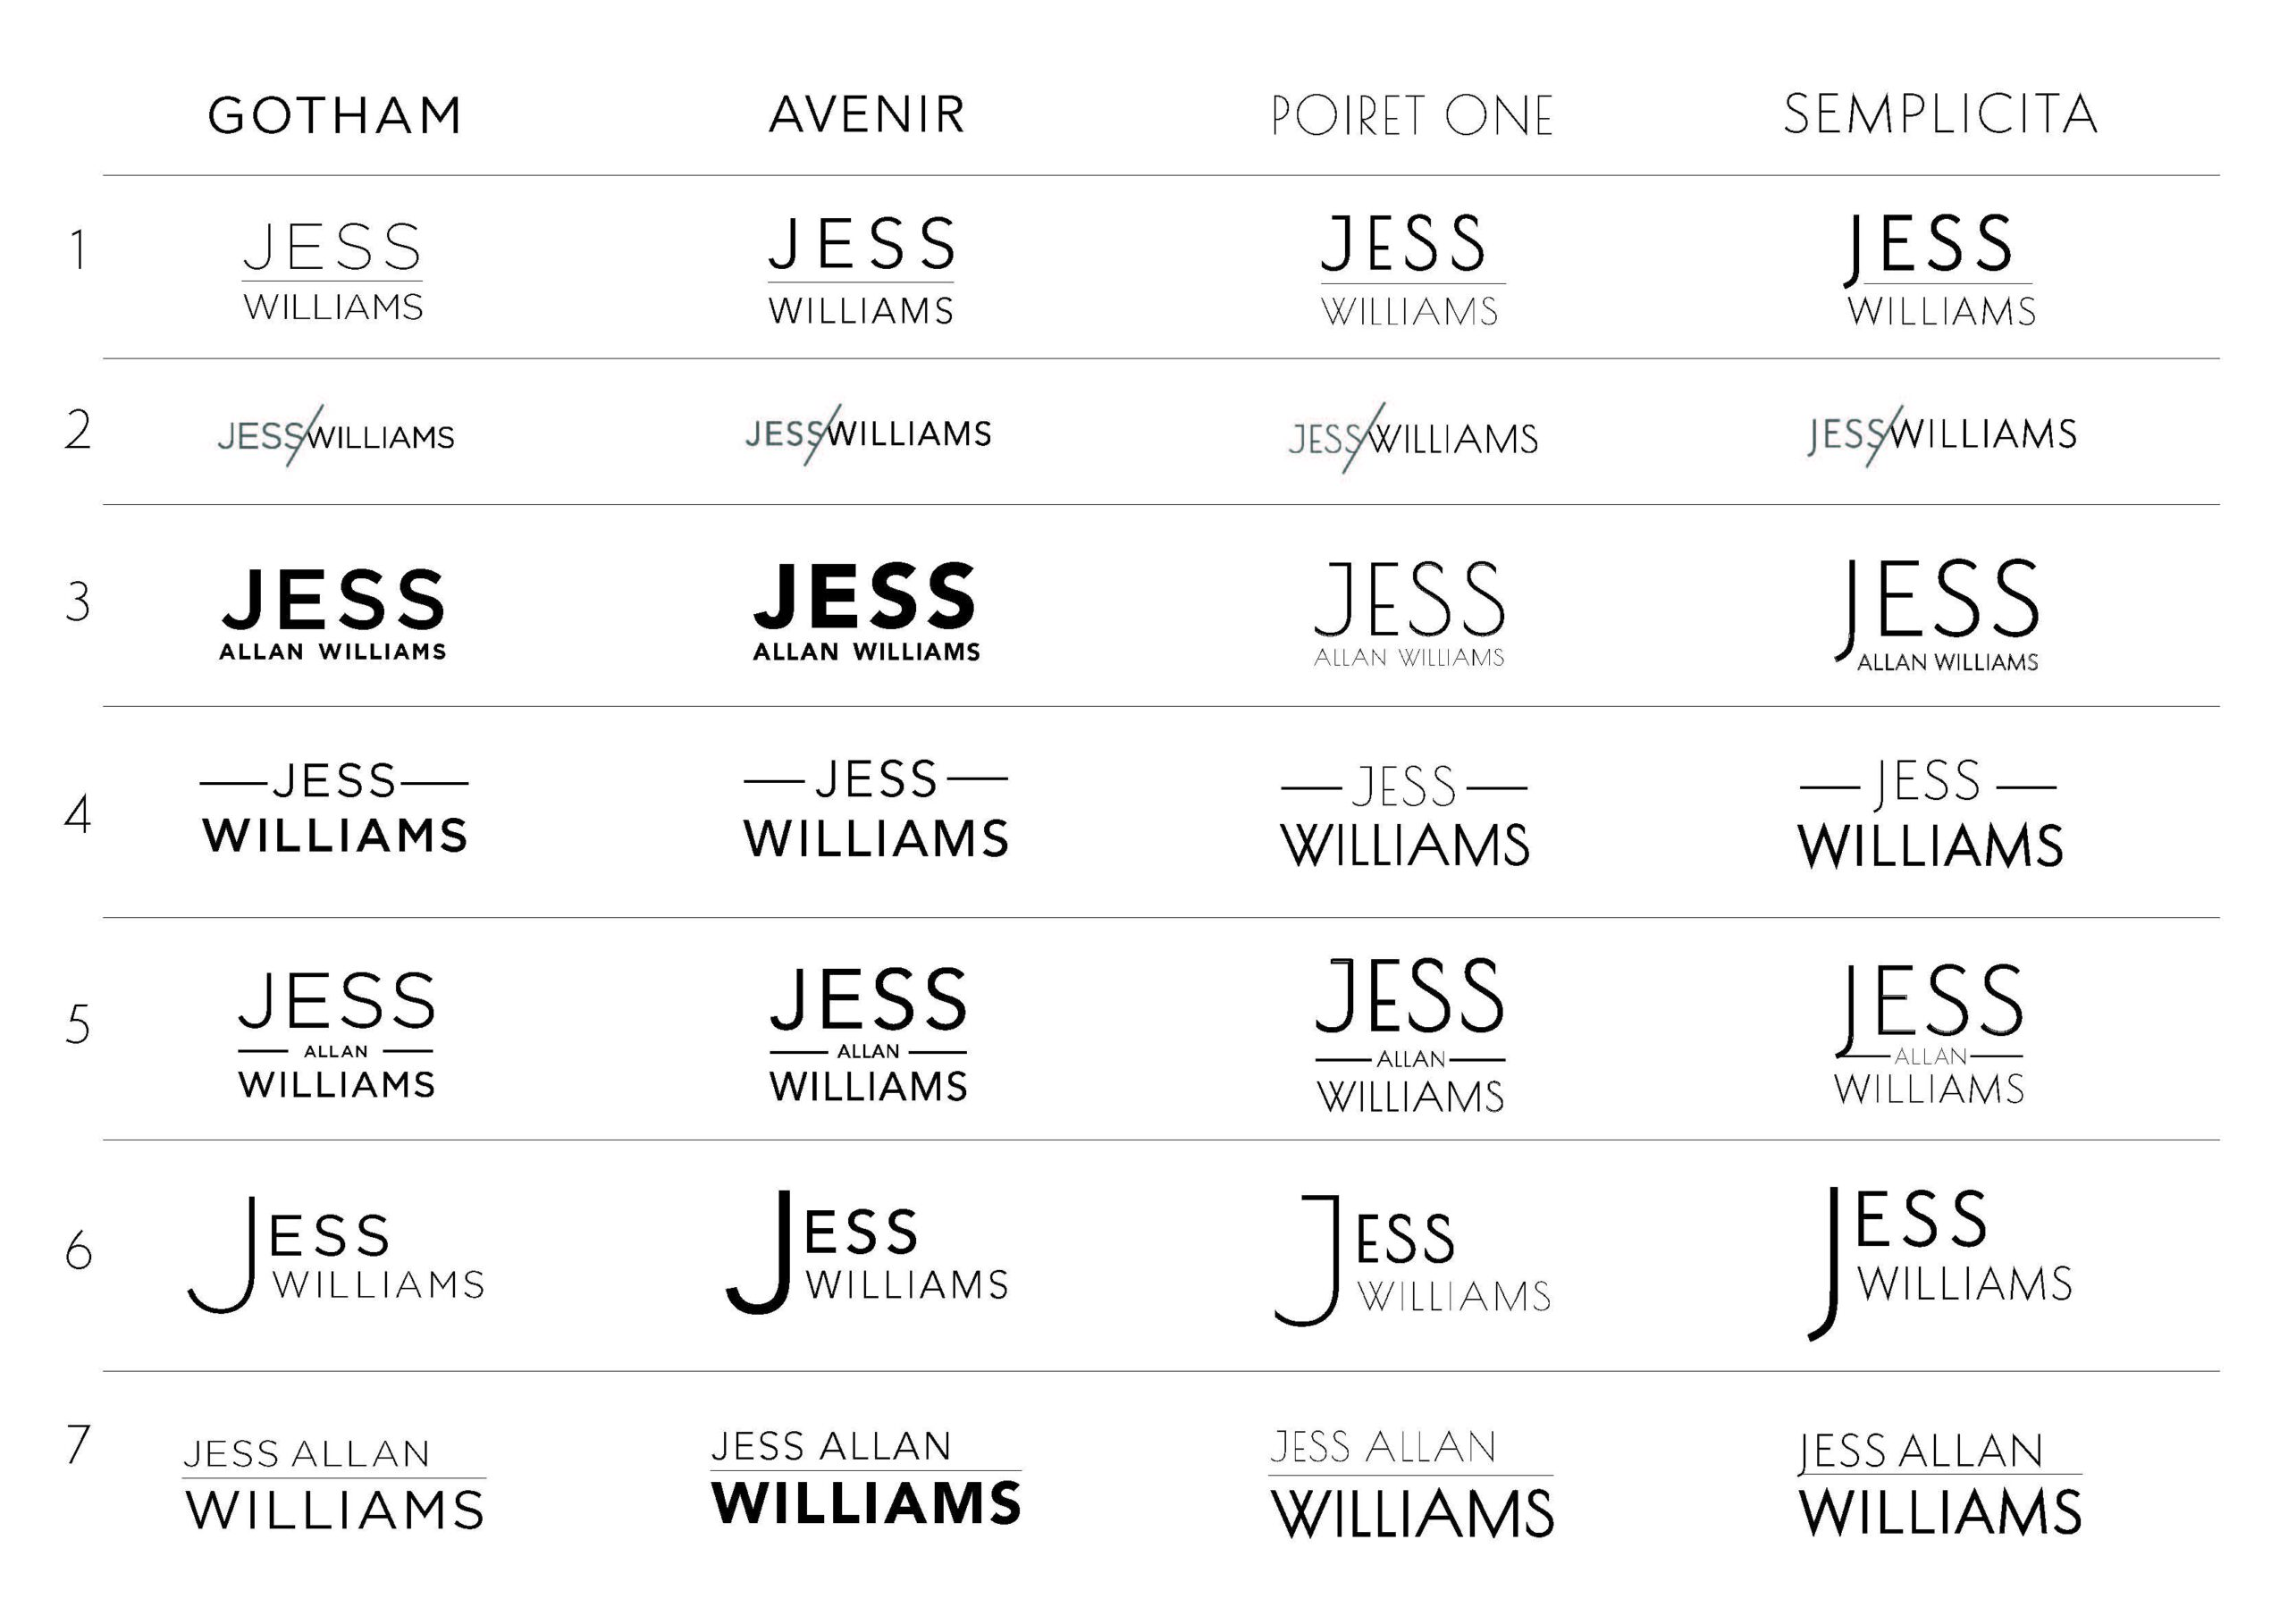 First round of choices Lindsay sent to Jess for his Wordmark